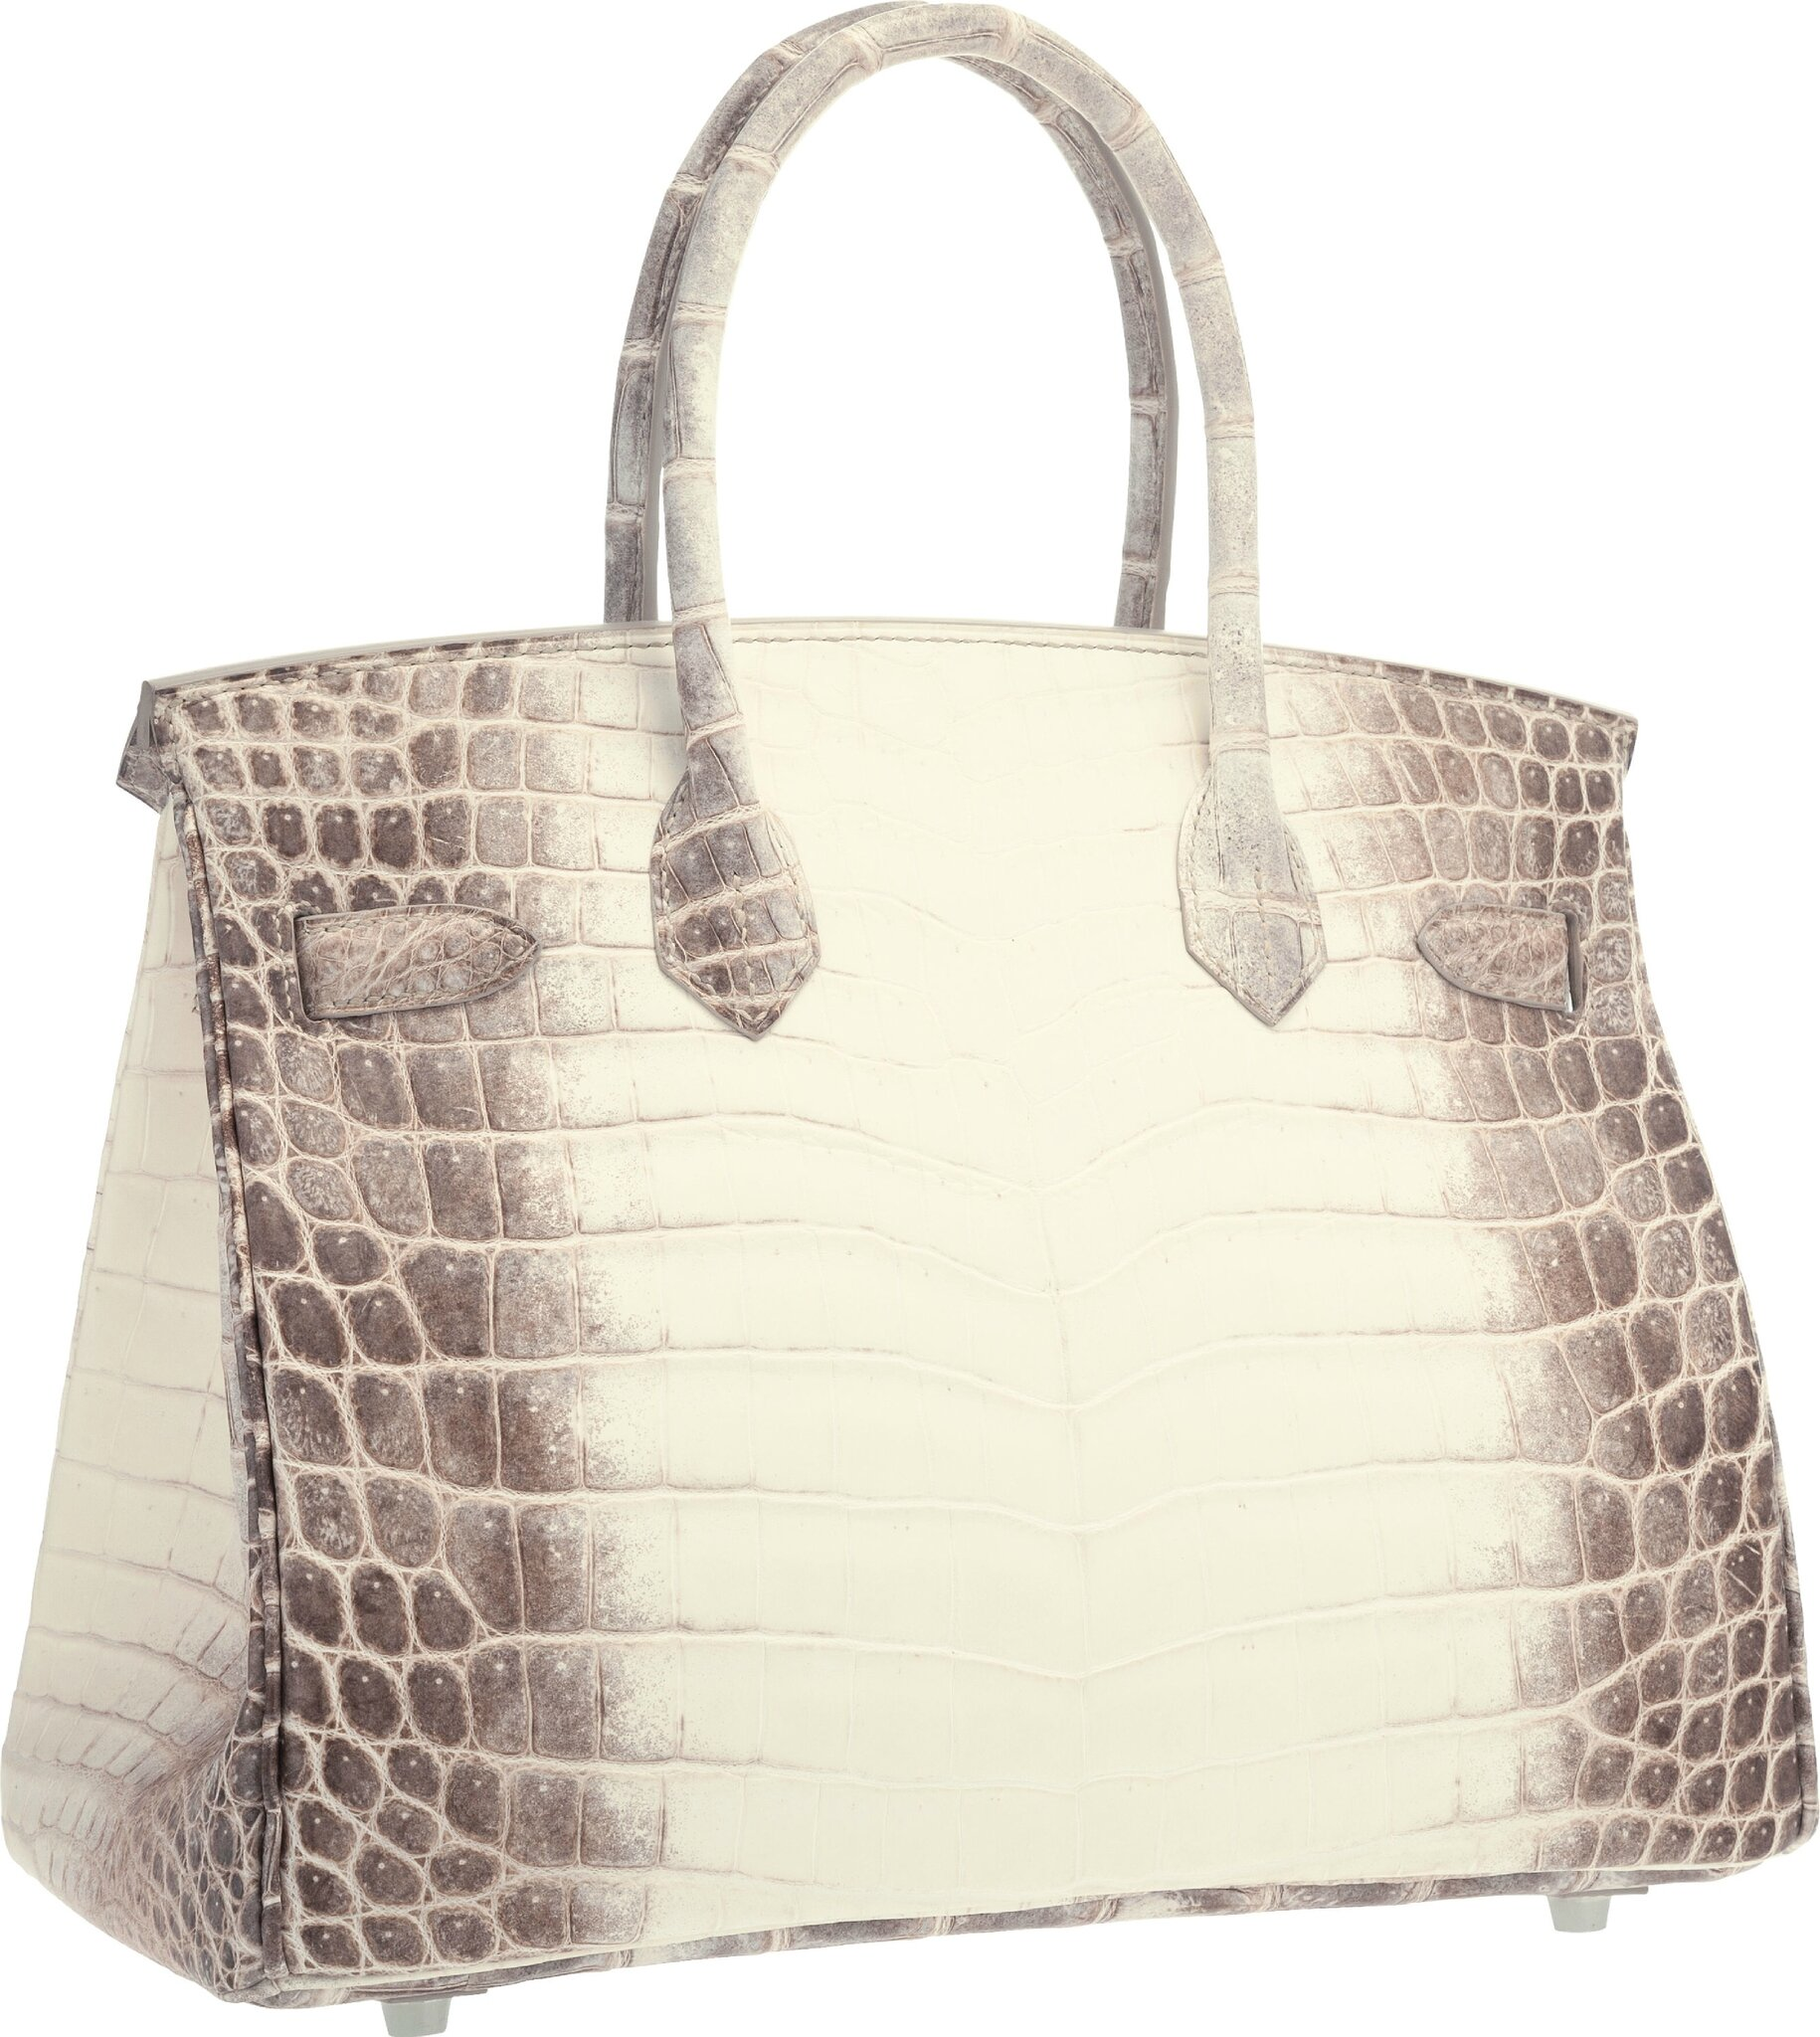 e02346899630 Hermès 30cm Matte White Himalayan Nilo Crocodile Birkin Bag with Palladium  Hardware. Estimate   80